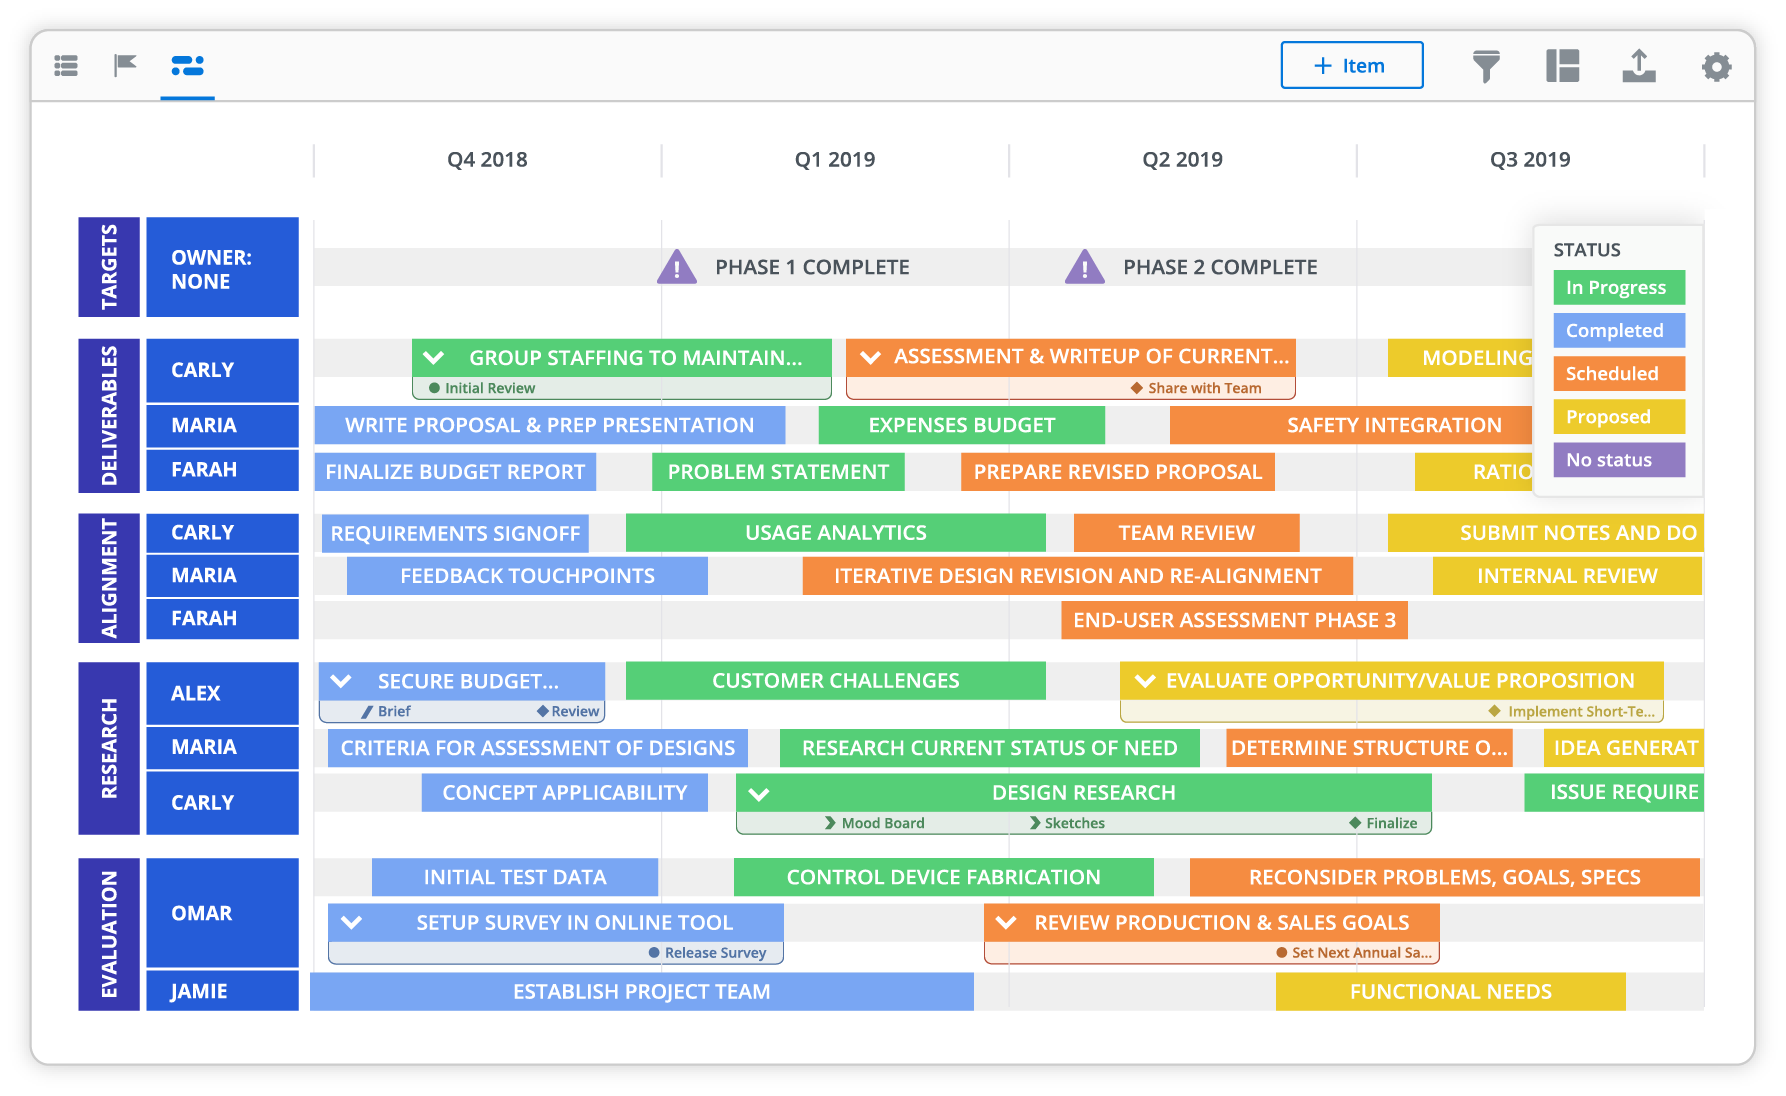 Timeline project roadmap Get a snapshot of key tasks and